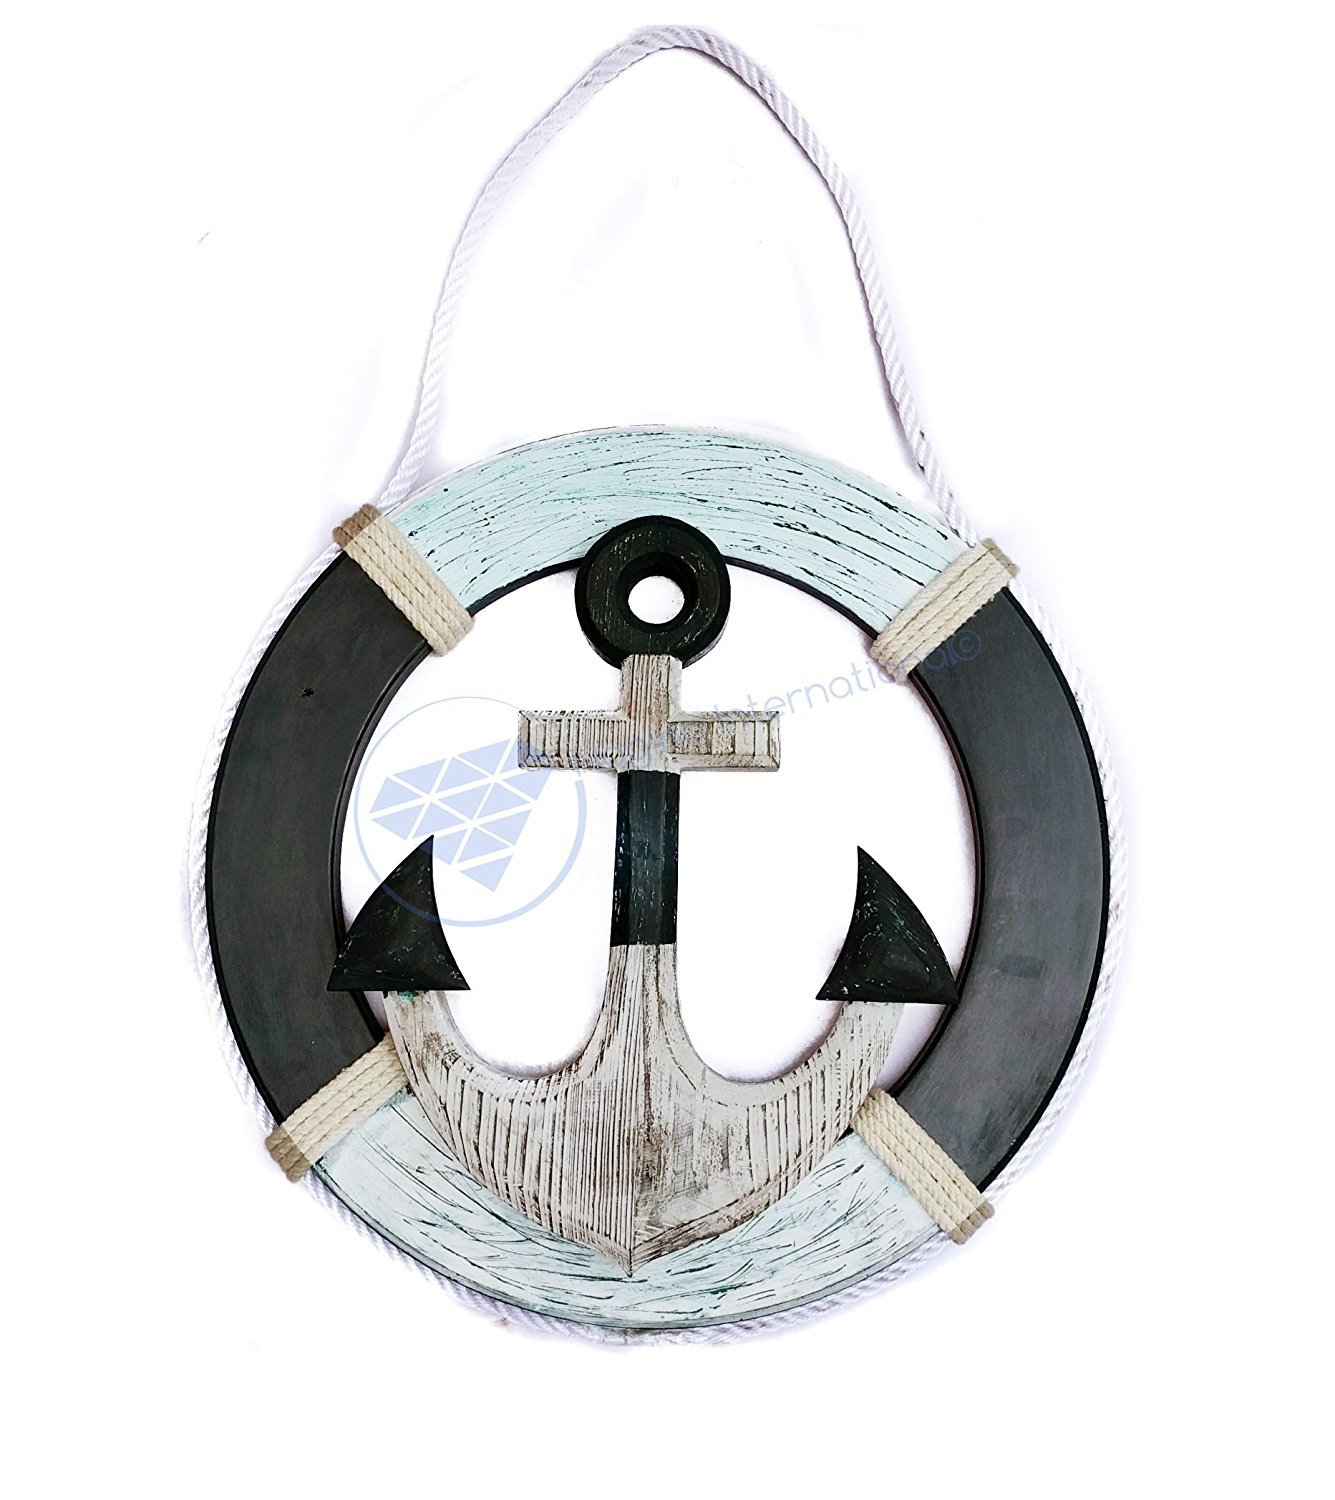 Nautical Antique Rustic Wooden Life Ring With Pine Wood & Ropes  Nautical Home Decor Gift   Nagina International (30 Inches)